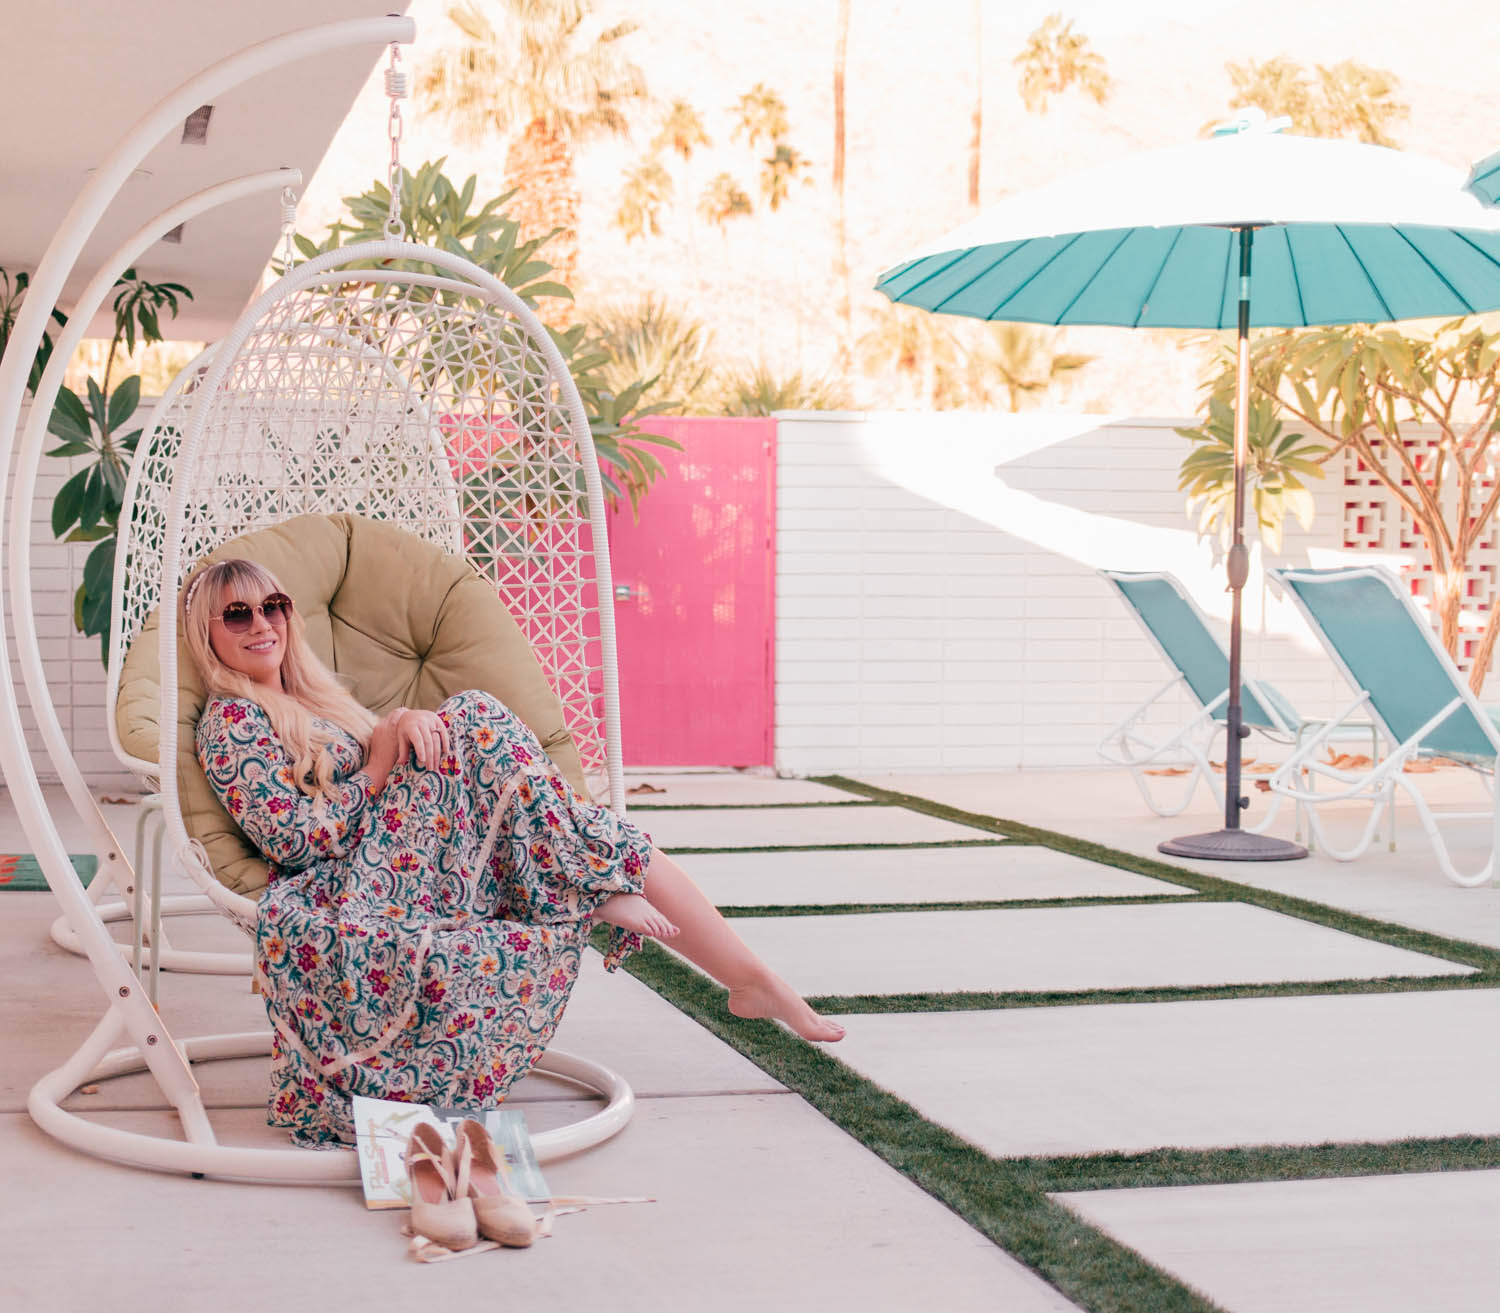 Elizabeth Hugen of Lizzie in Lace wears a floral Palm Springs style dress